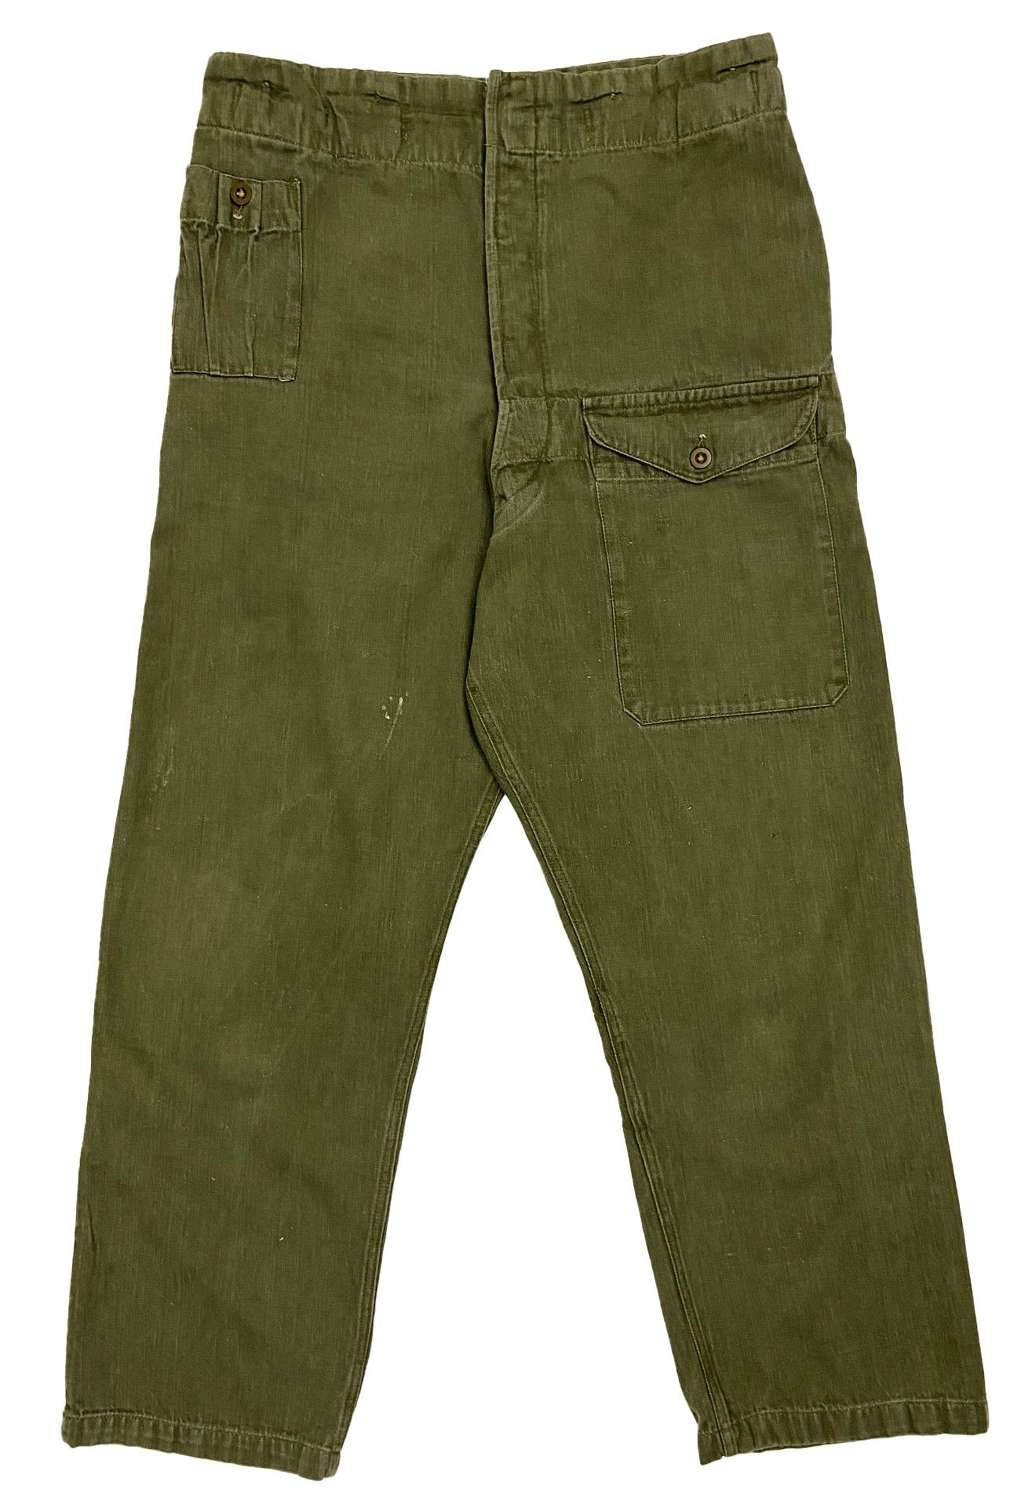 Original 1955 Dated British Denim Battledress Trousers